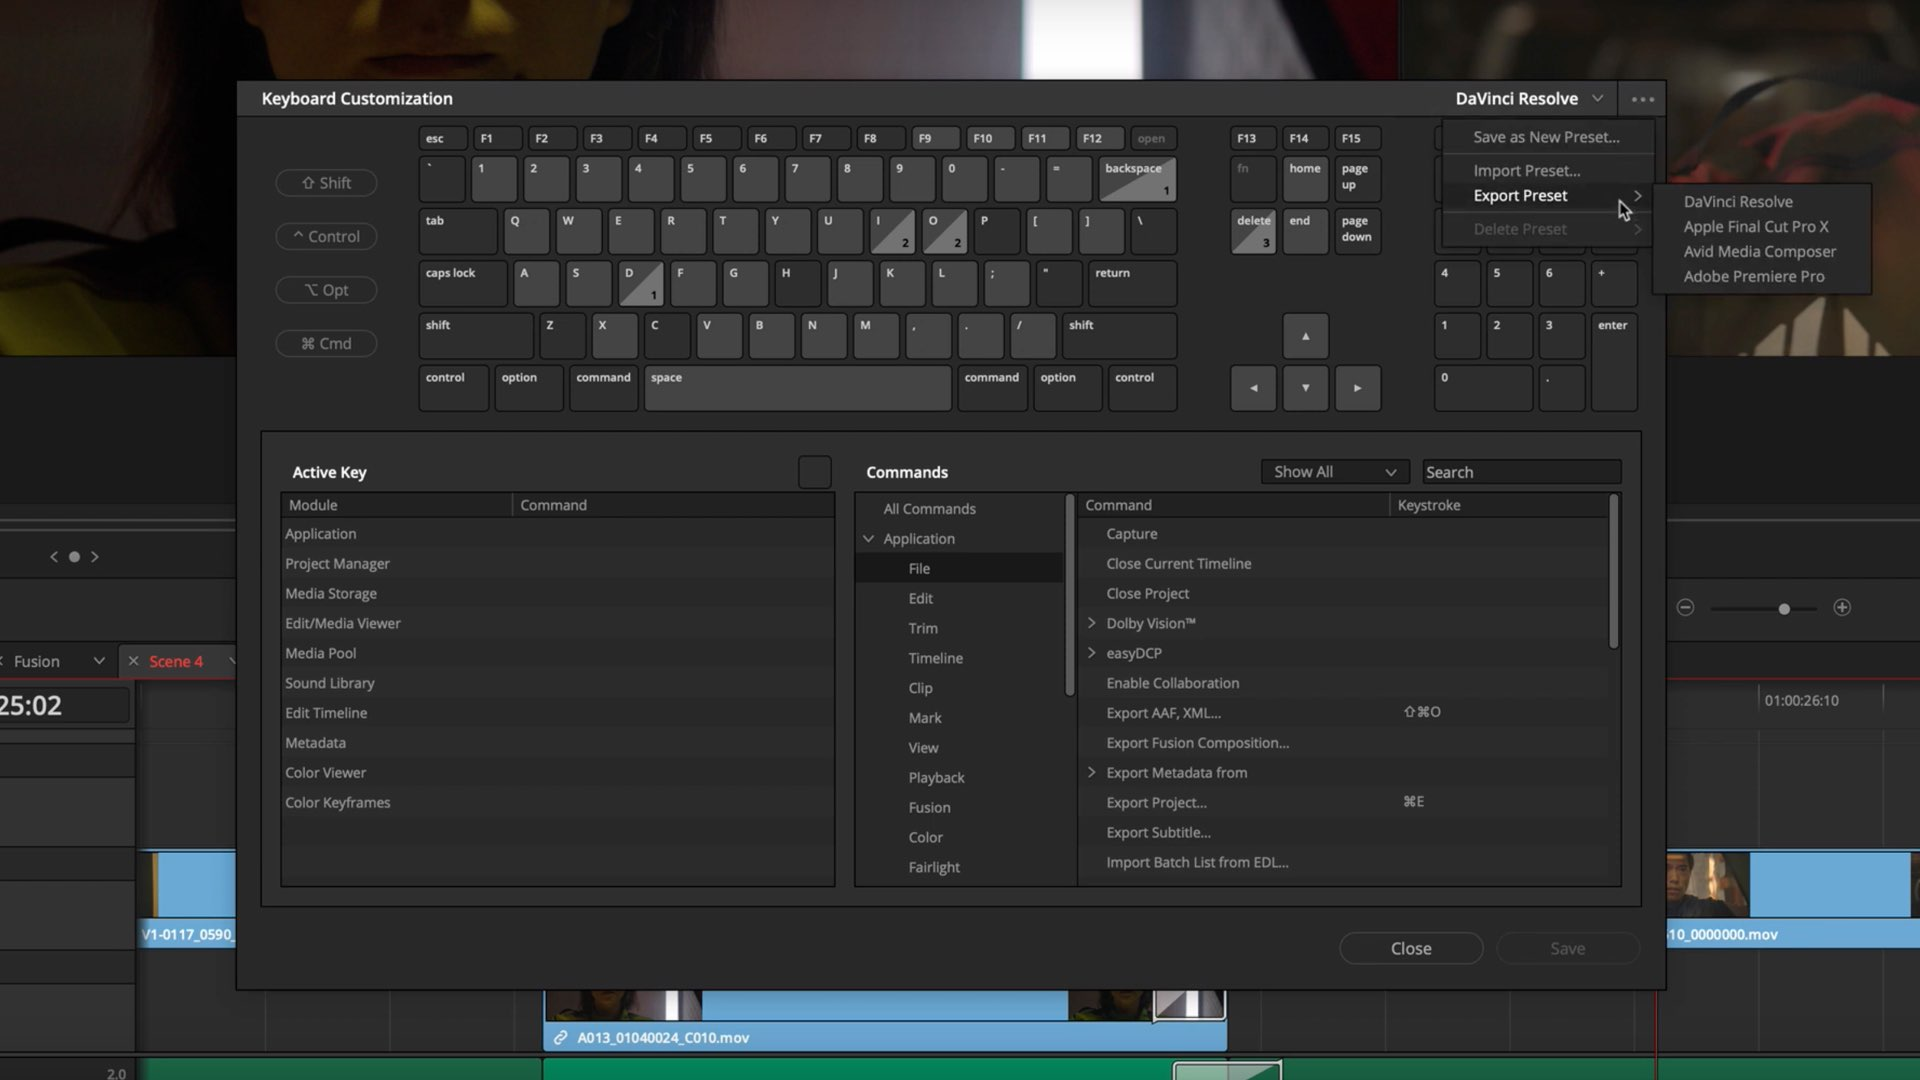 DaVinci Resolve 15 2 Announced: Improved NLE Capabilities - Y M